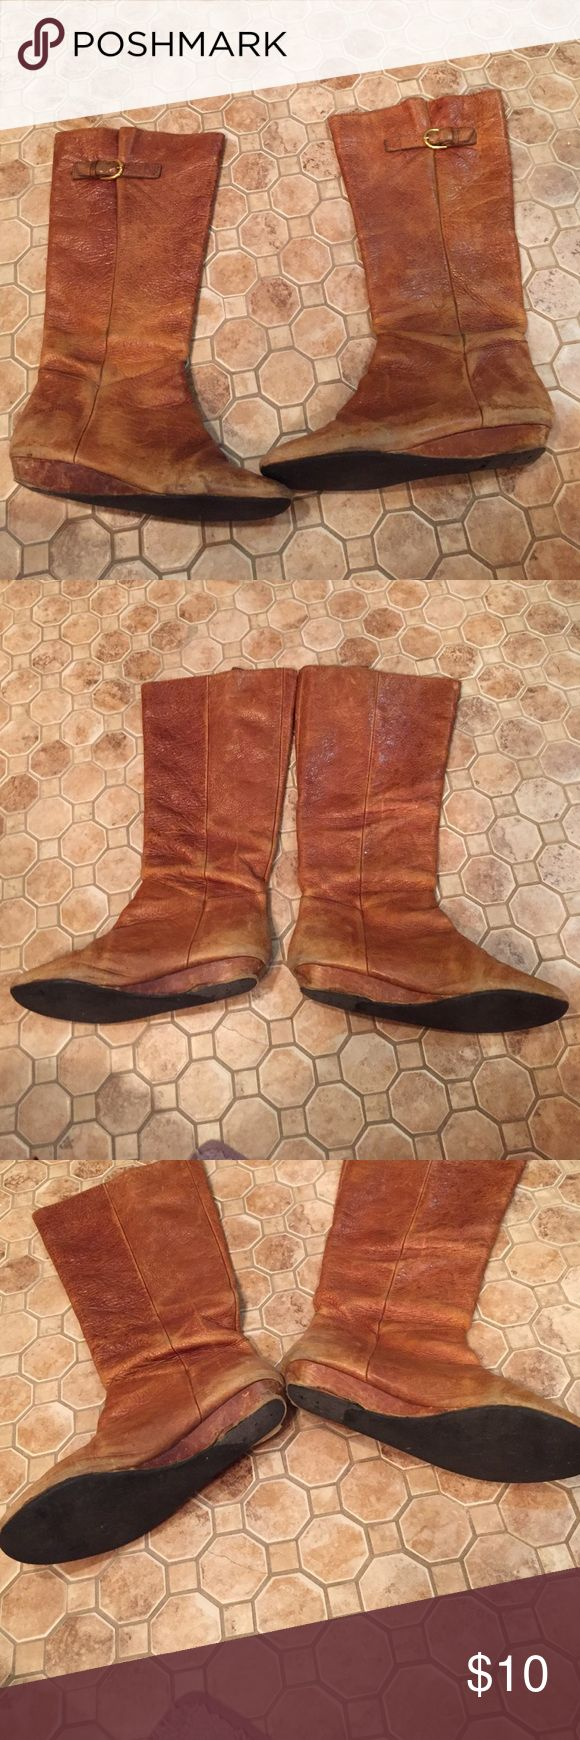 Steve Madden Cognac Intyce Riding Boots Steve Madden Intyce riding boots in cognac color. 1 inch wedges heel and side buckles. These are well loved and the sole should be replaced, as the heel is wearing out. Perfect for someone handy or willing to invest in a shoe repair to fix these. 100% Leather with suede lining inside. Steve Madden Shoes